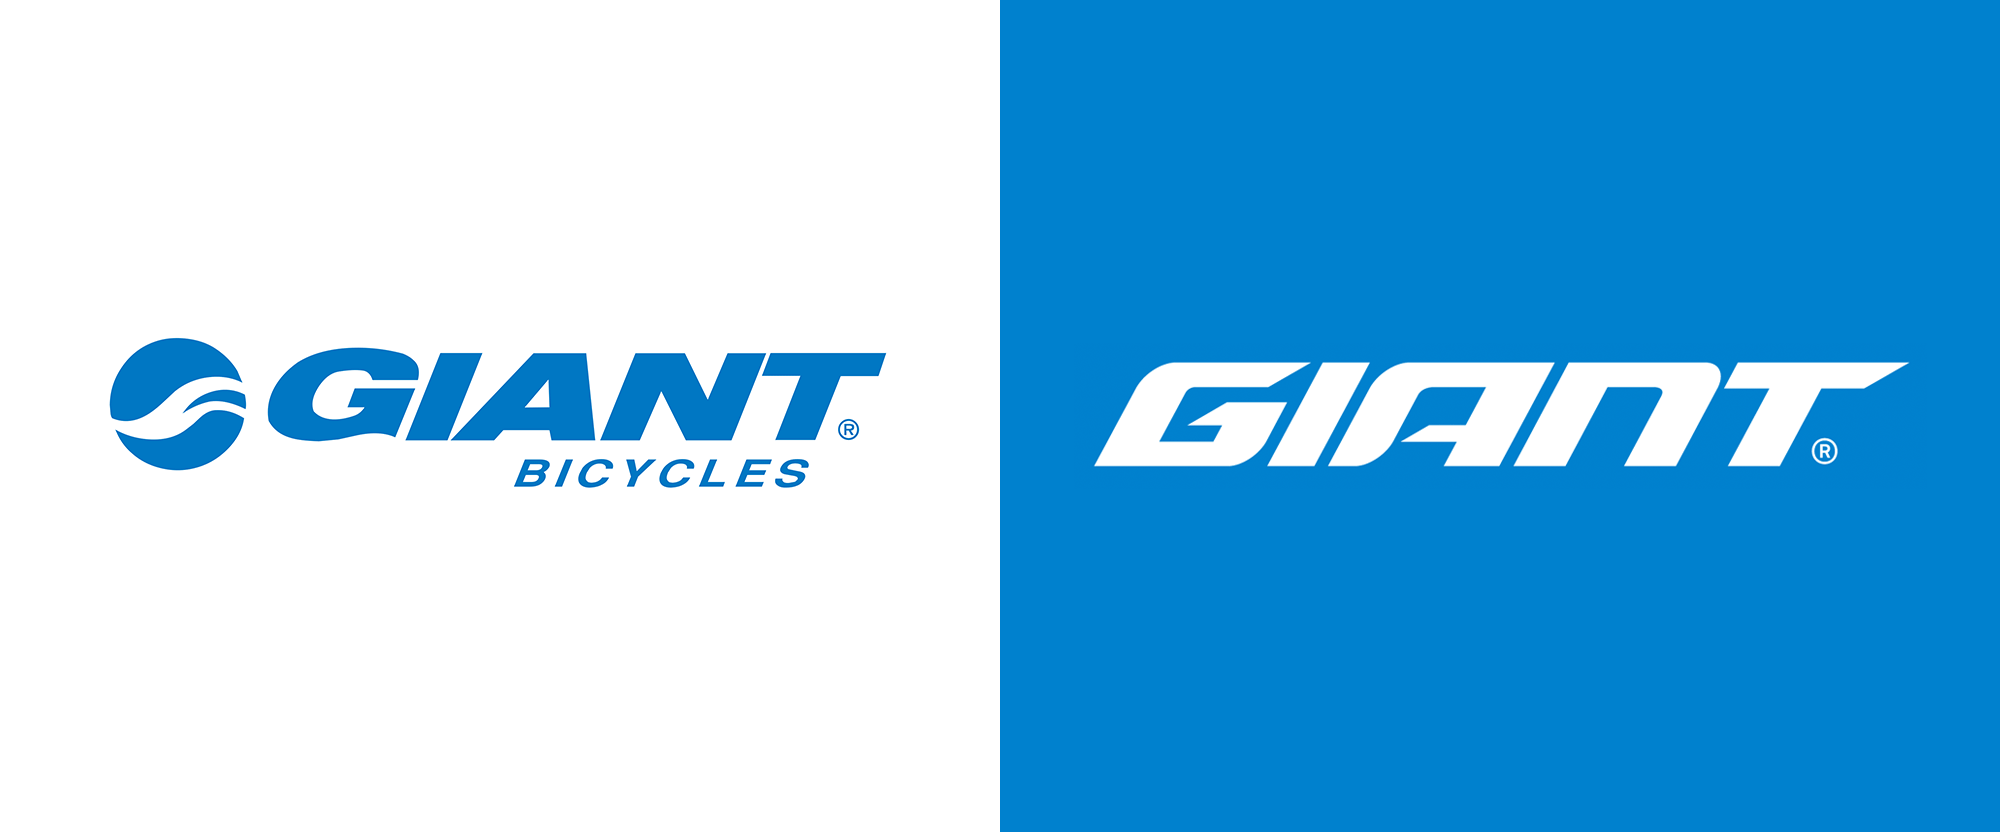 New Logo for Giant Bicycles